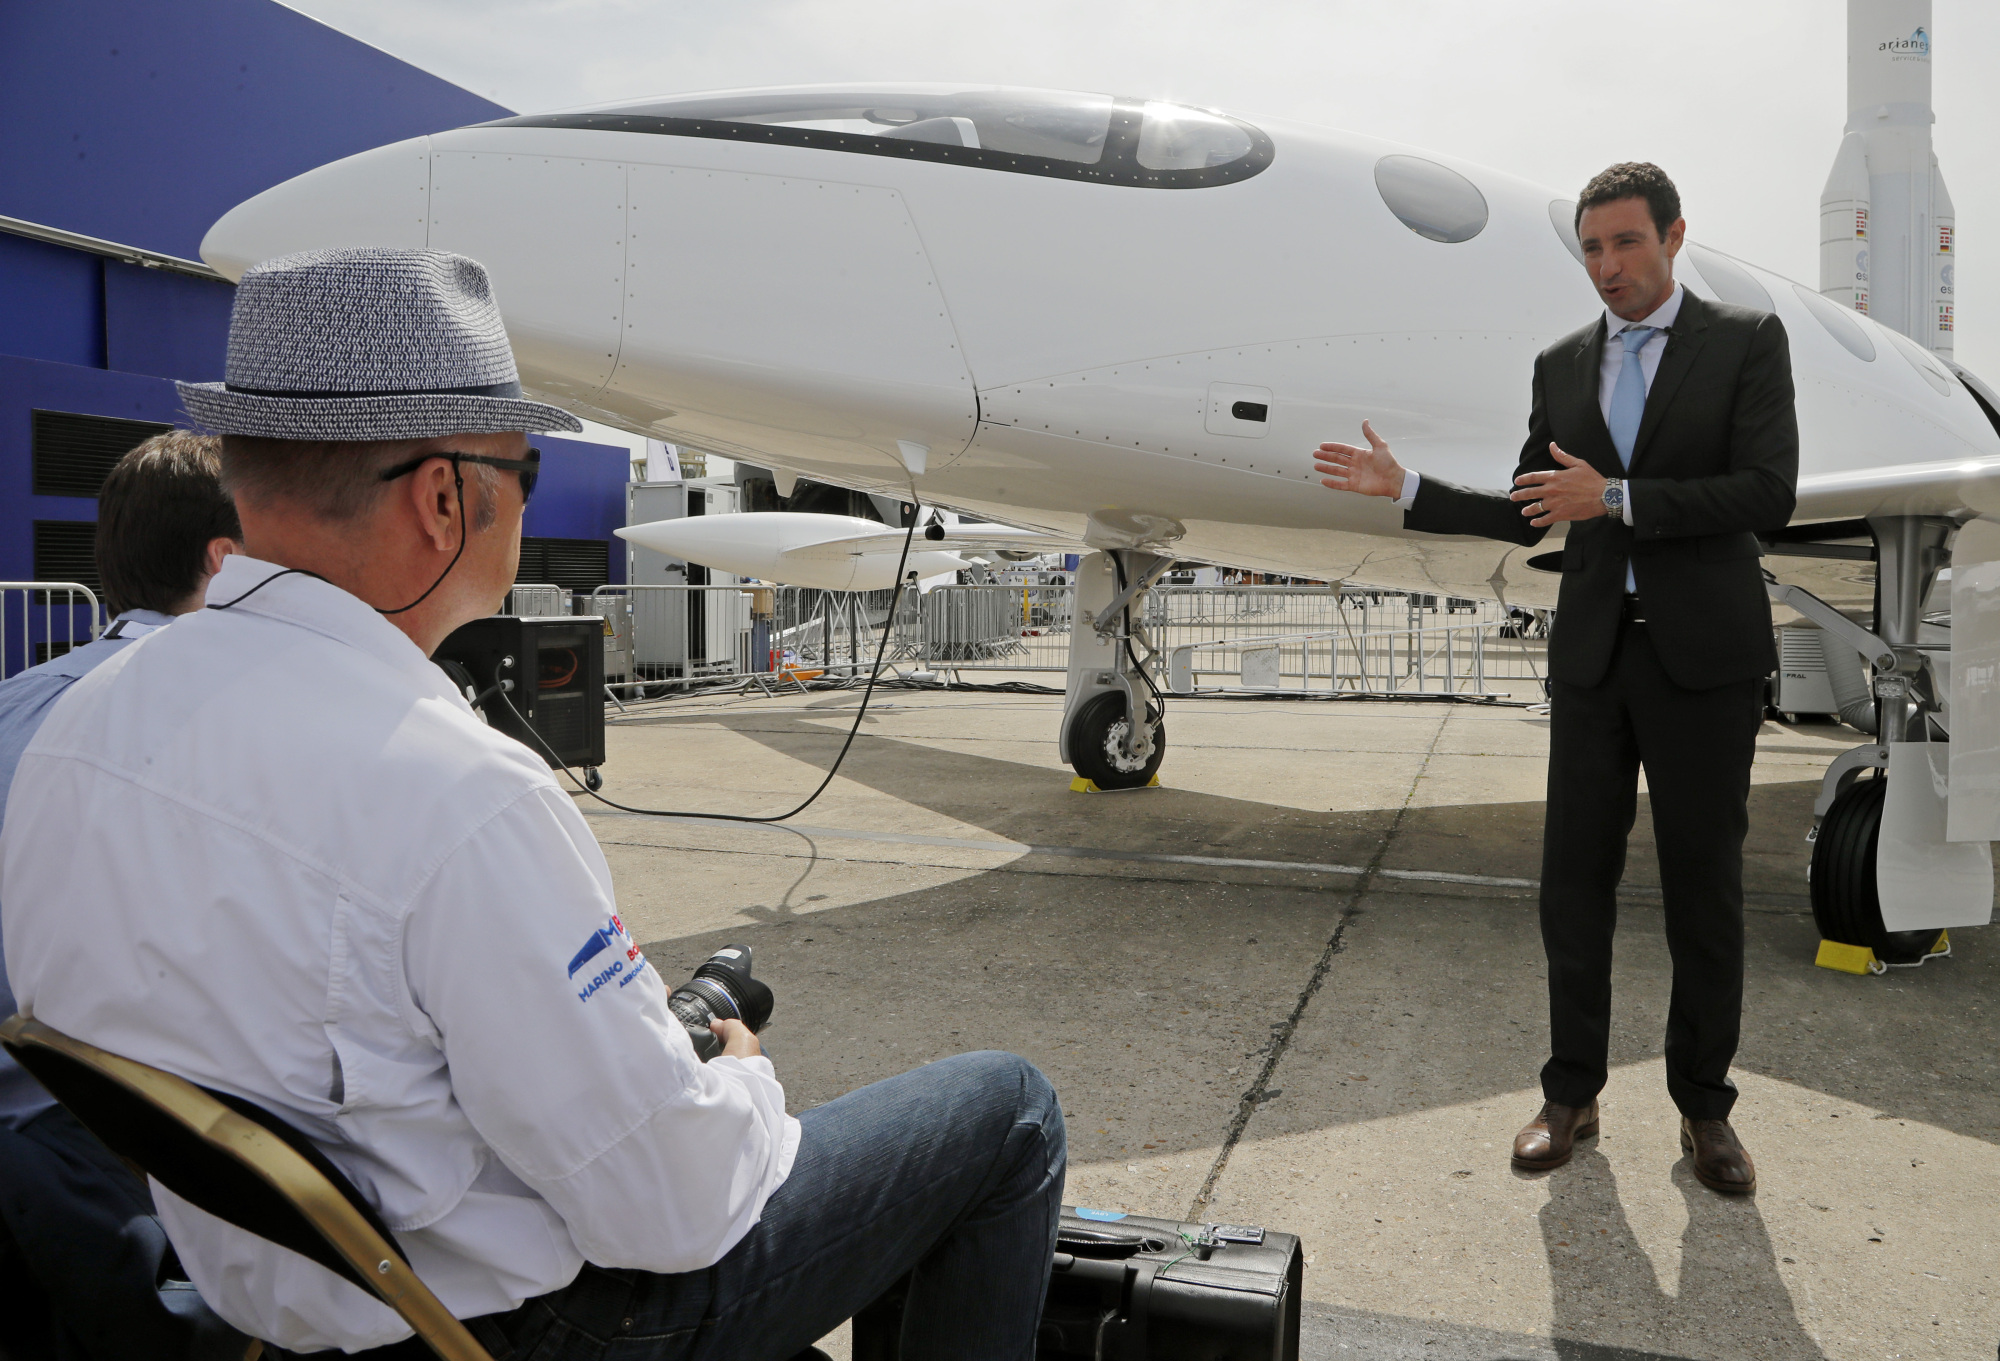 Omer Bar-Yohay, Eviation CEO and co-founder, gestures as he speaks during a media conference next to his prototype electric aircraft at the Paris Air Show, in Le Bourget, east of Paris, Tuesday. Israeli startup Eviation displayed an all-electric airplane prototype dubbed Alice, as the aviation industry increasingly looks to electric and hybrid technology because of pressure from regulators and the public to reduce emissions. | AP